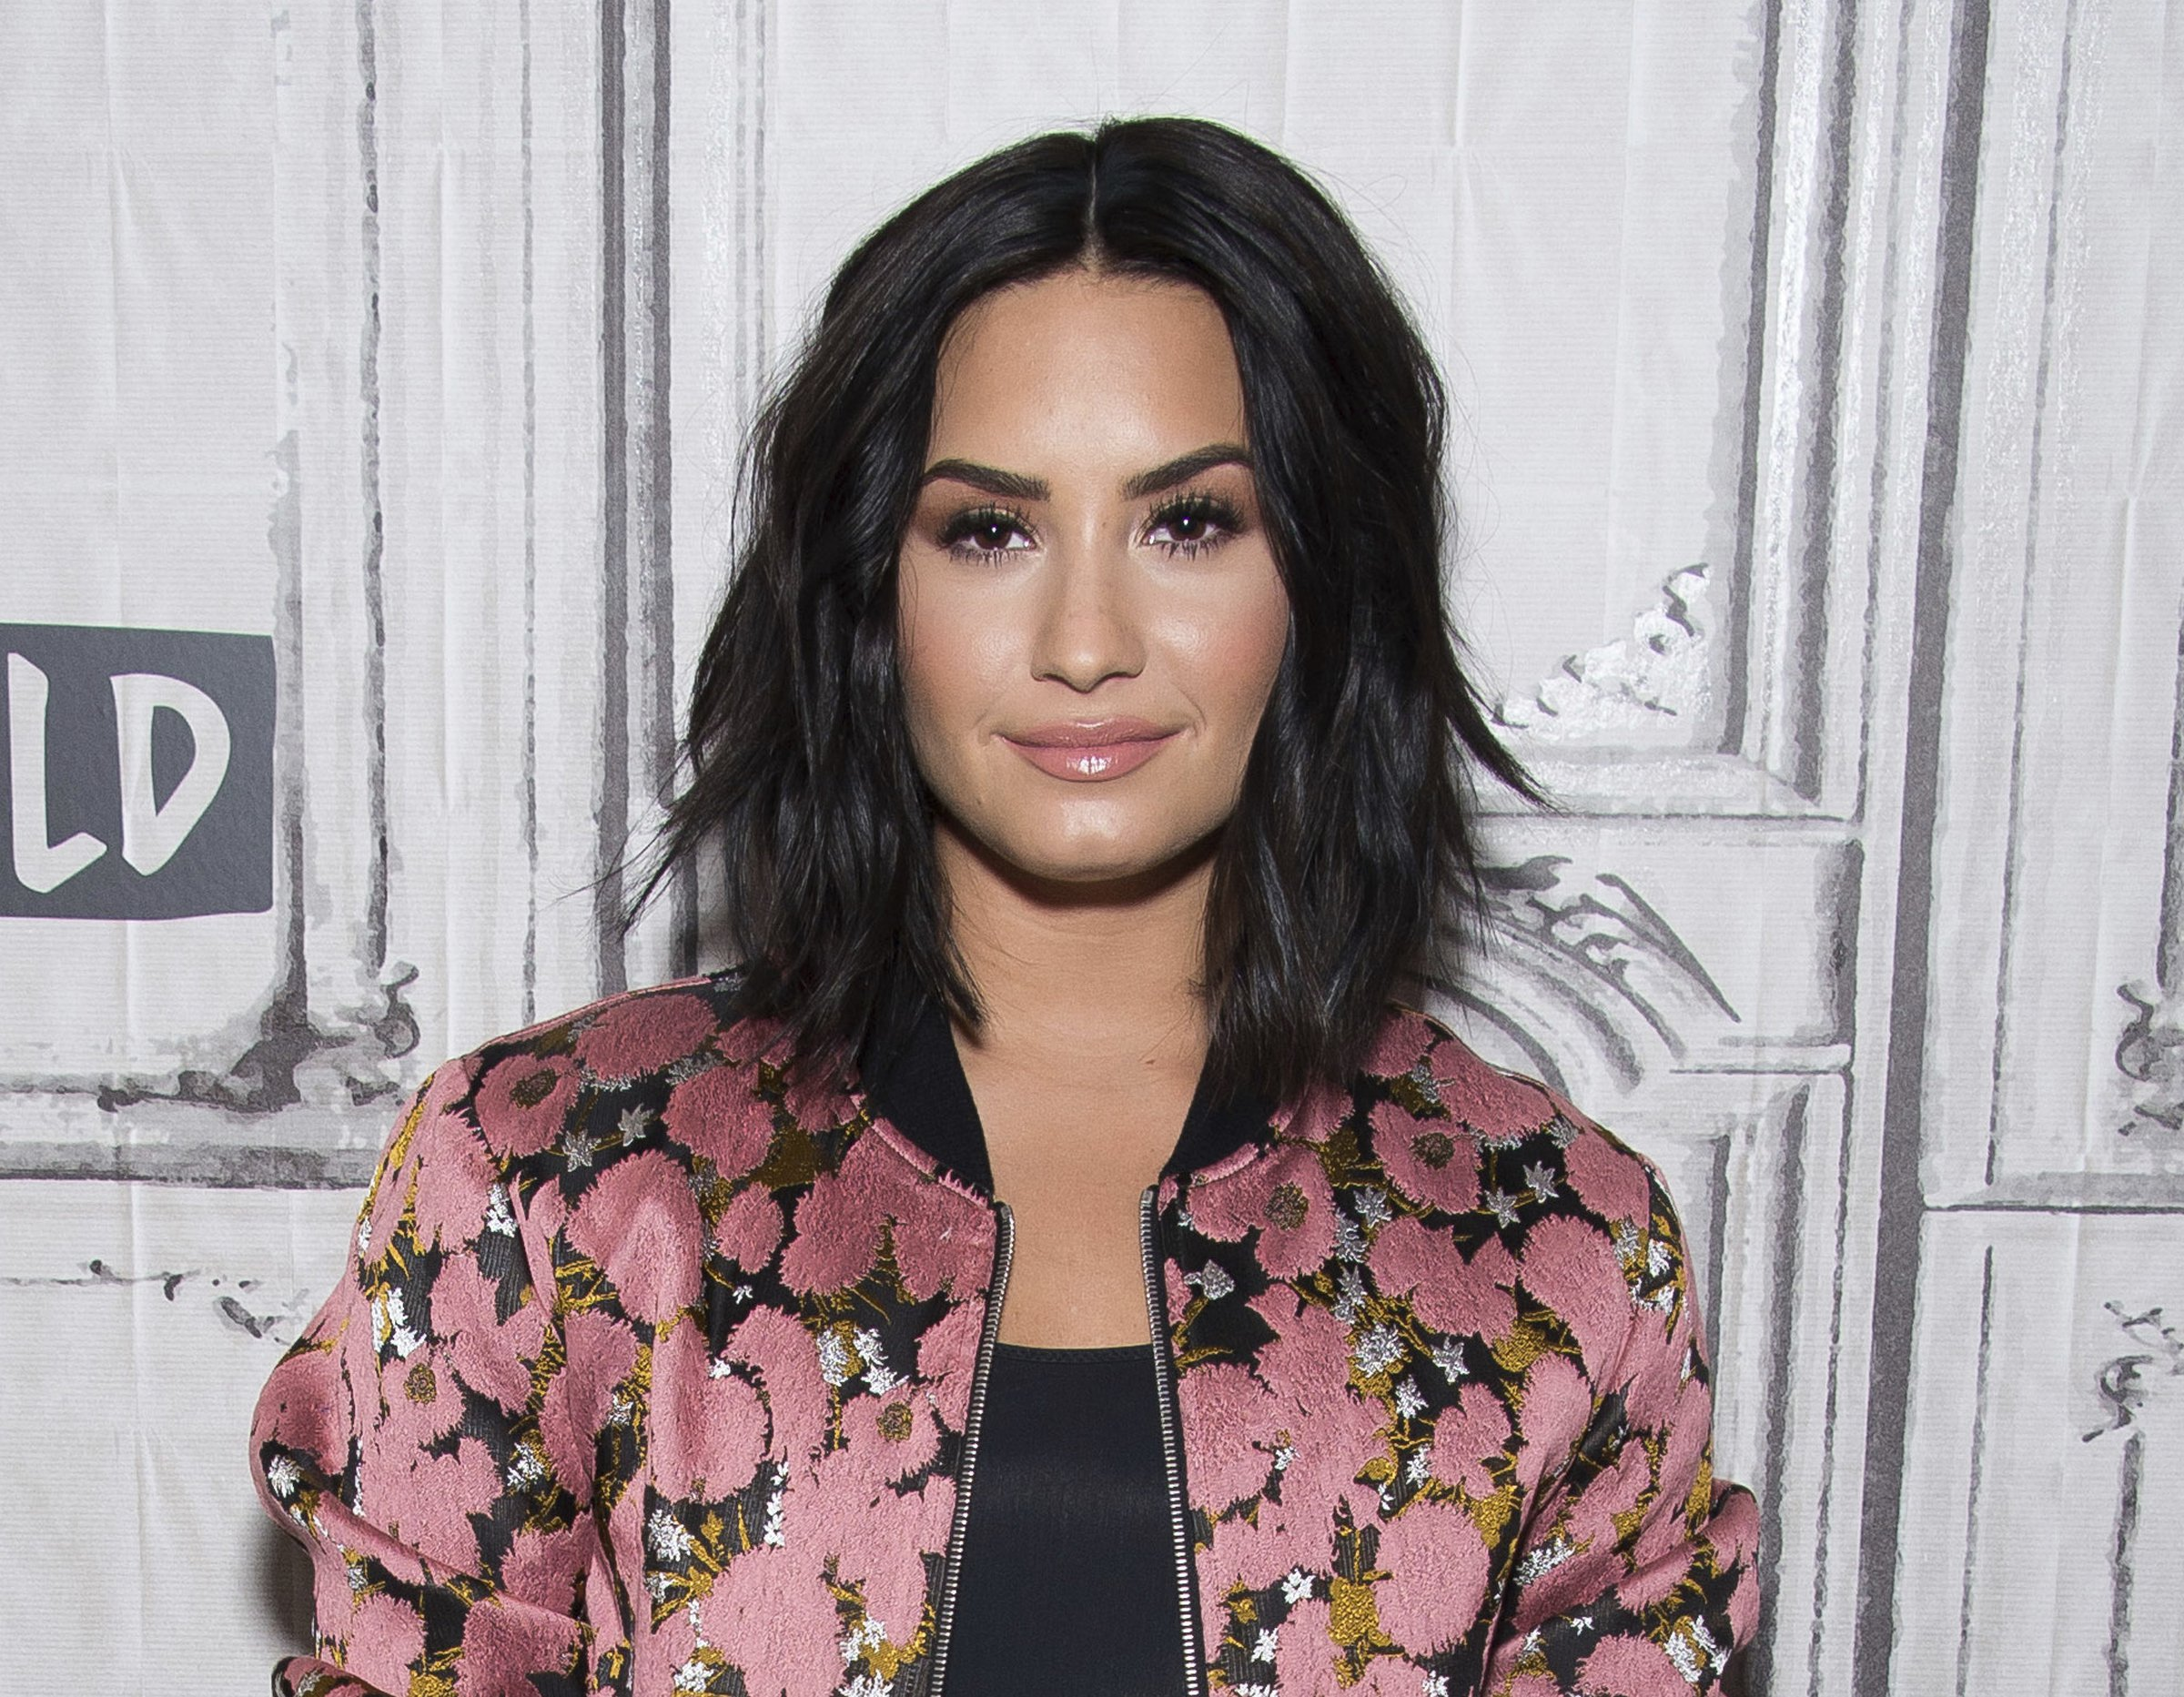 """FILE - In this March 20, 2017 file photo, Demi Lovato participates in the BUILD Speaker Series to discuss """"Smurfs: The Lost Village"""" in New York. Lovato has checked out of the hospital she was rushed to two weeks ago for a reported overdose. A person close to Lovato says she was released from Cedars-Sinai hospital in Los Angeles over the weekend. Lovato was hospitalized on July 24. (Photo by Charles Sykes/Invision/AP, File)"""